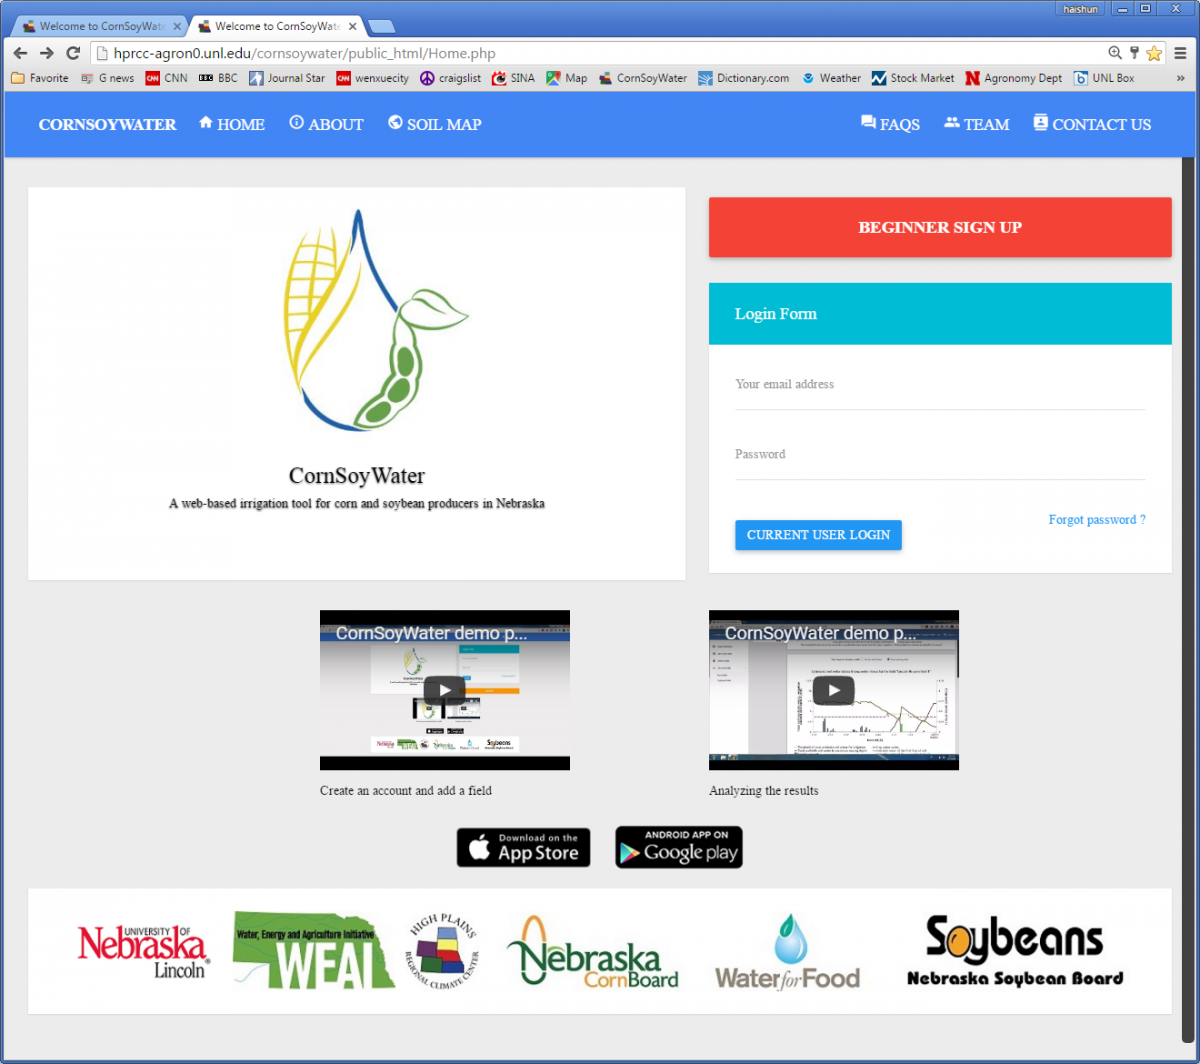 CornSoyWater home page